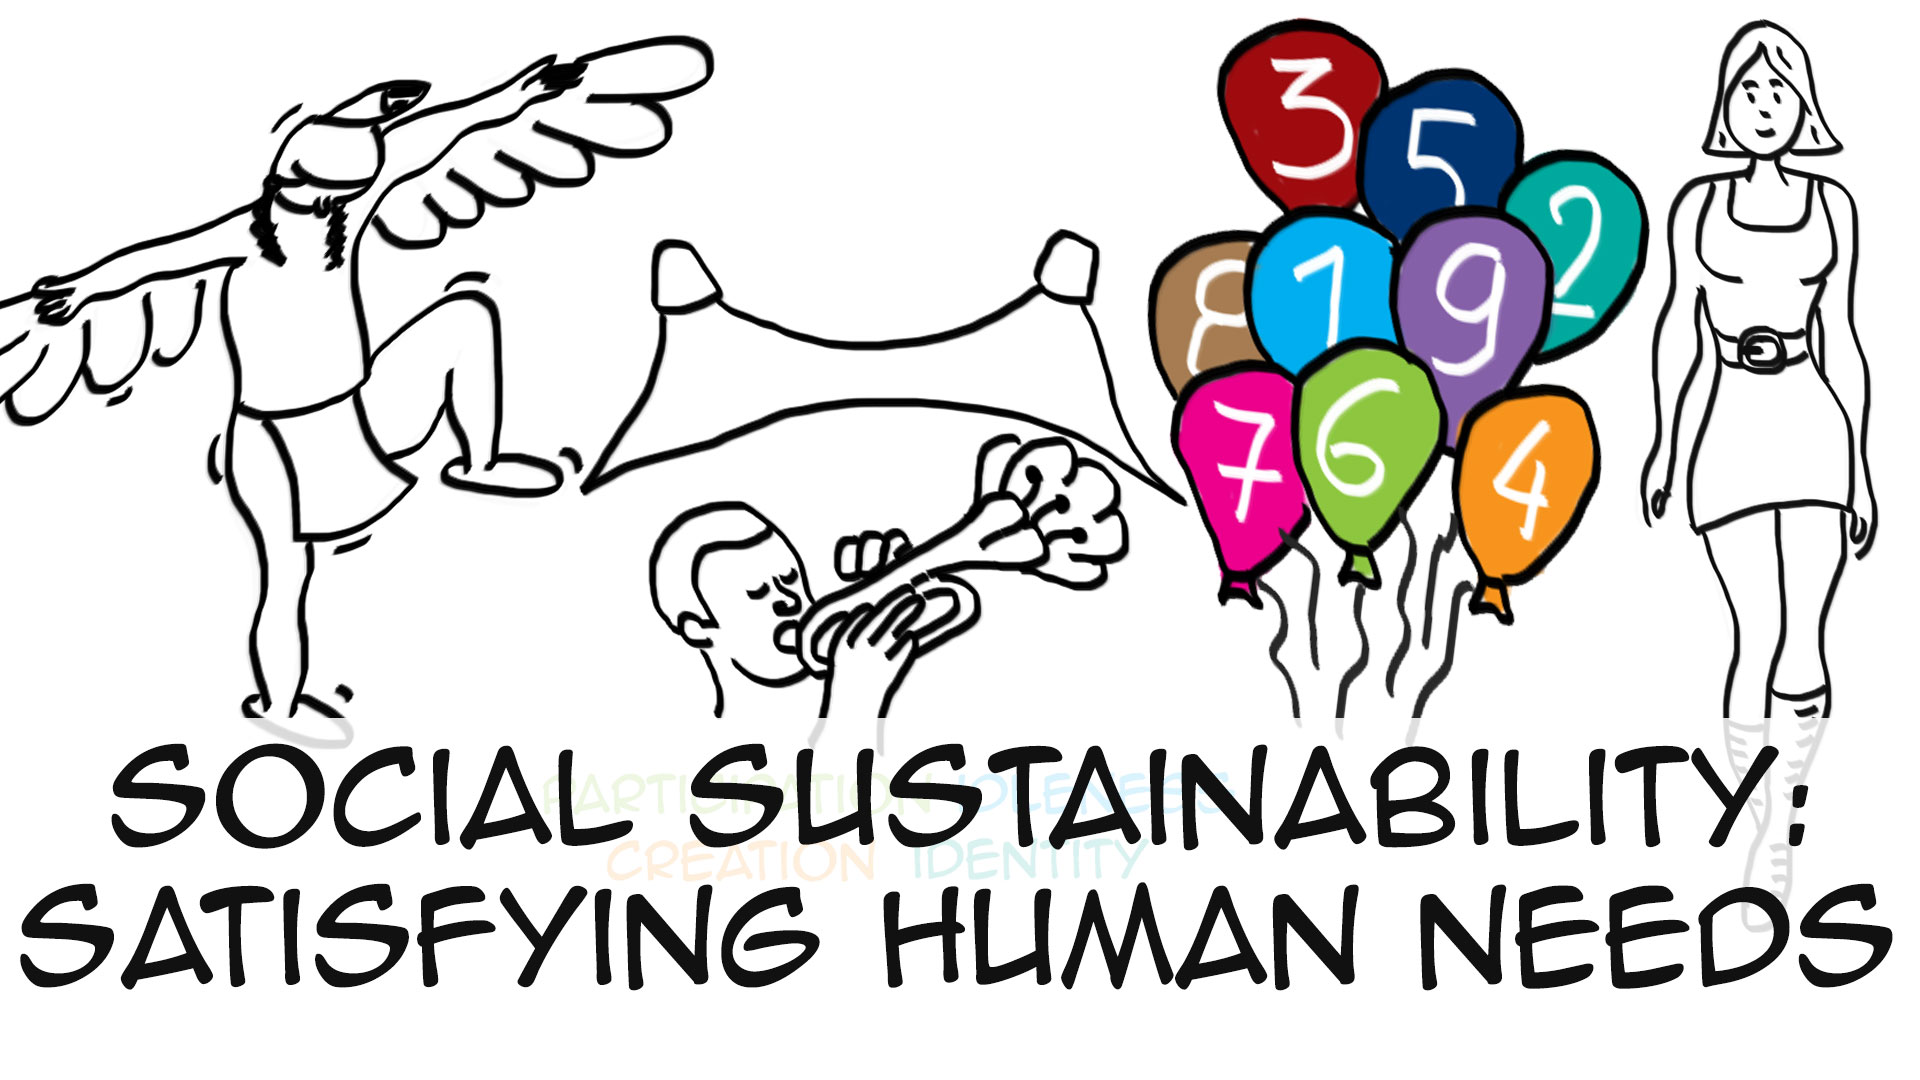 Social sustainability: satisfying human needs